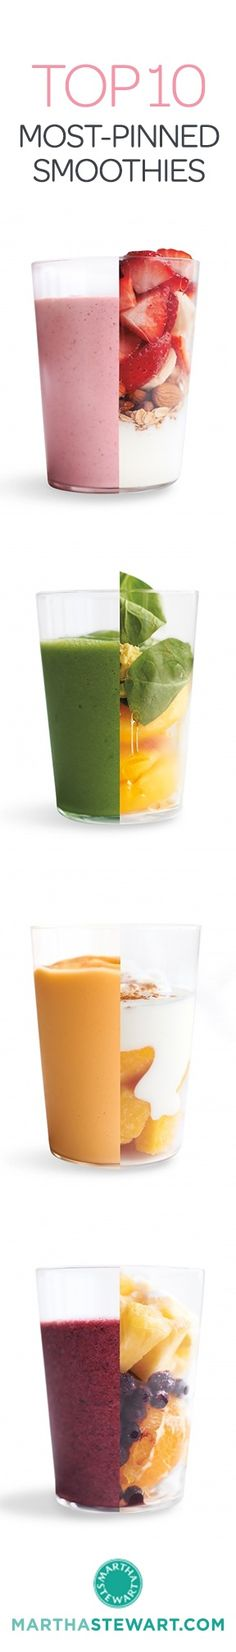 Pin of the Week: The Top 10 Smoothie Recipes from Martha Stewart